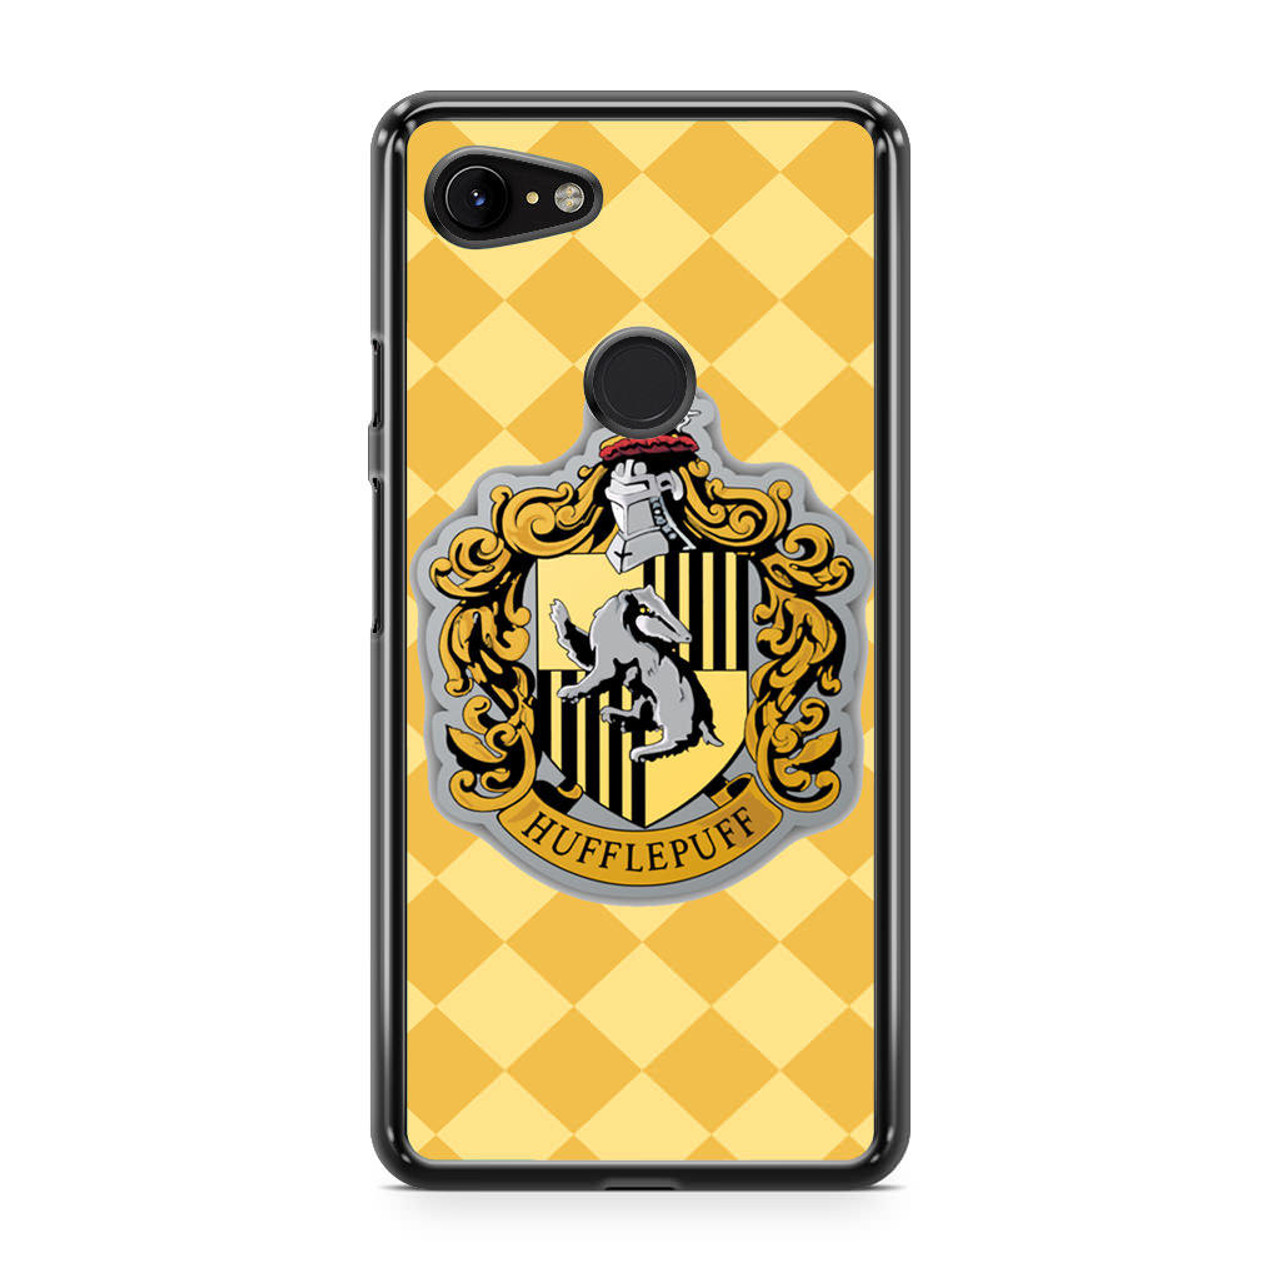 on sale 88ccd 860a7 Hoghwart School - Hufflepuff Google Pixel 3 Case